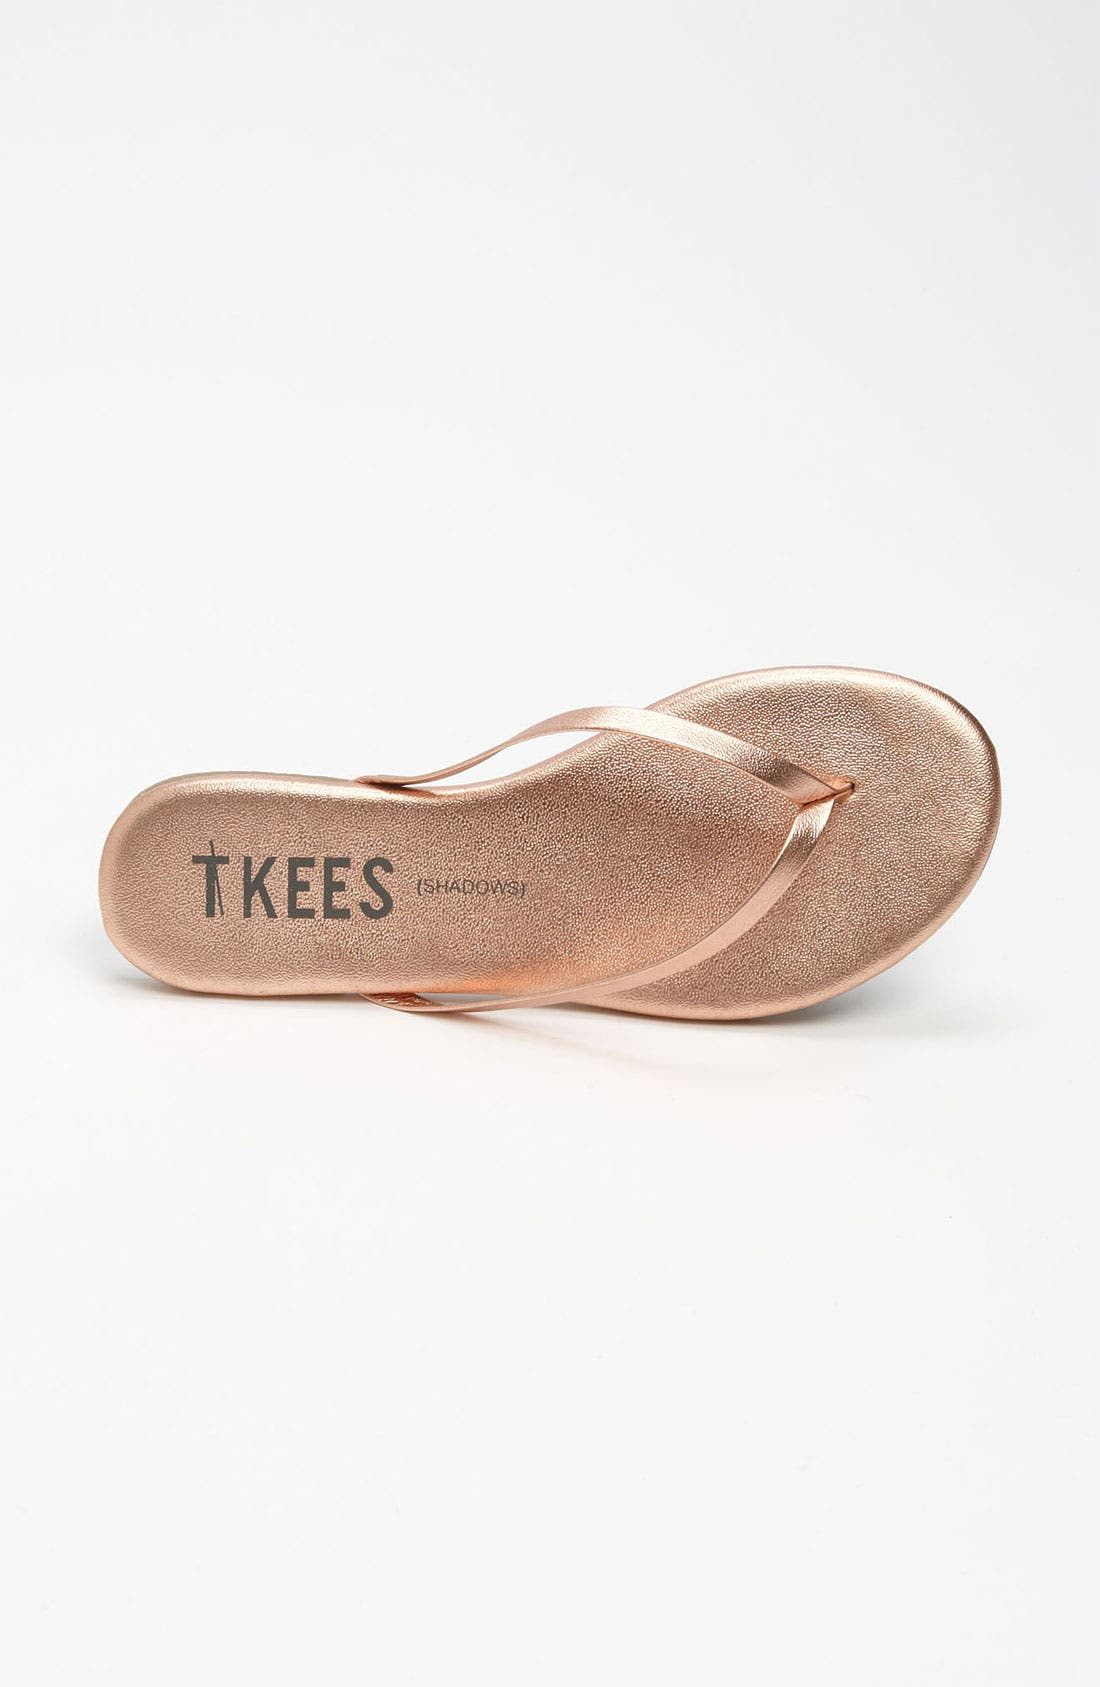 Alternate Image 3  - TKEES 'Highlighters' Flip Flop